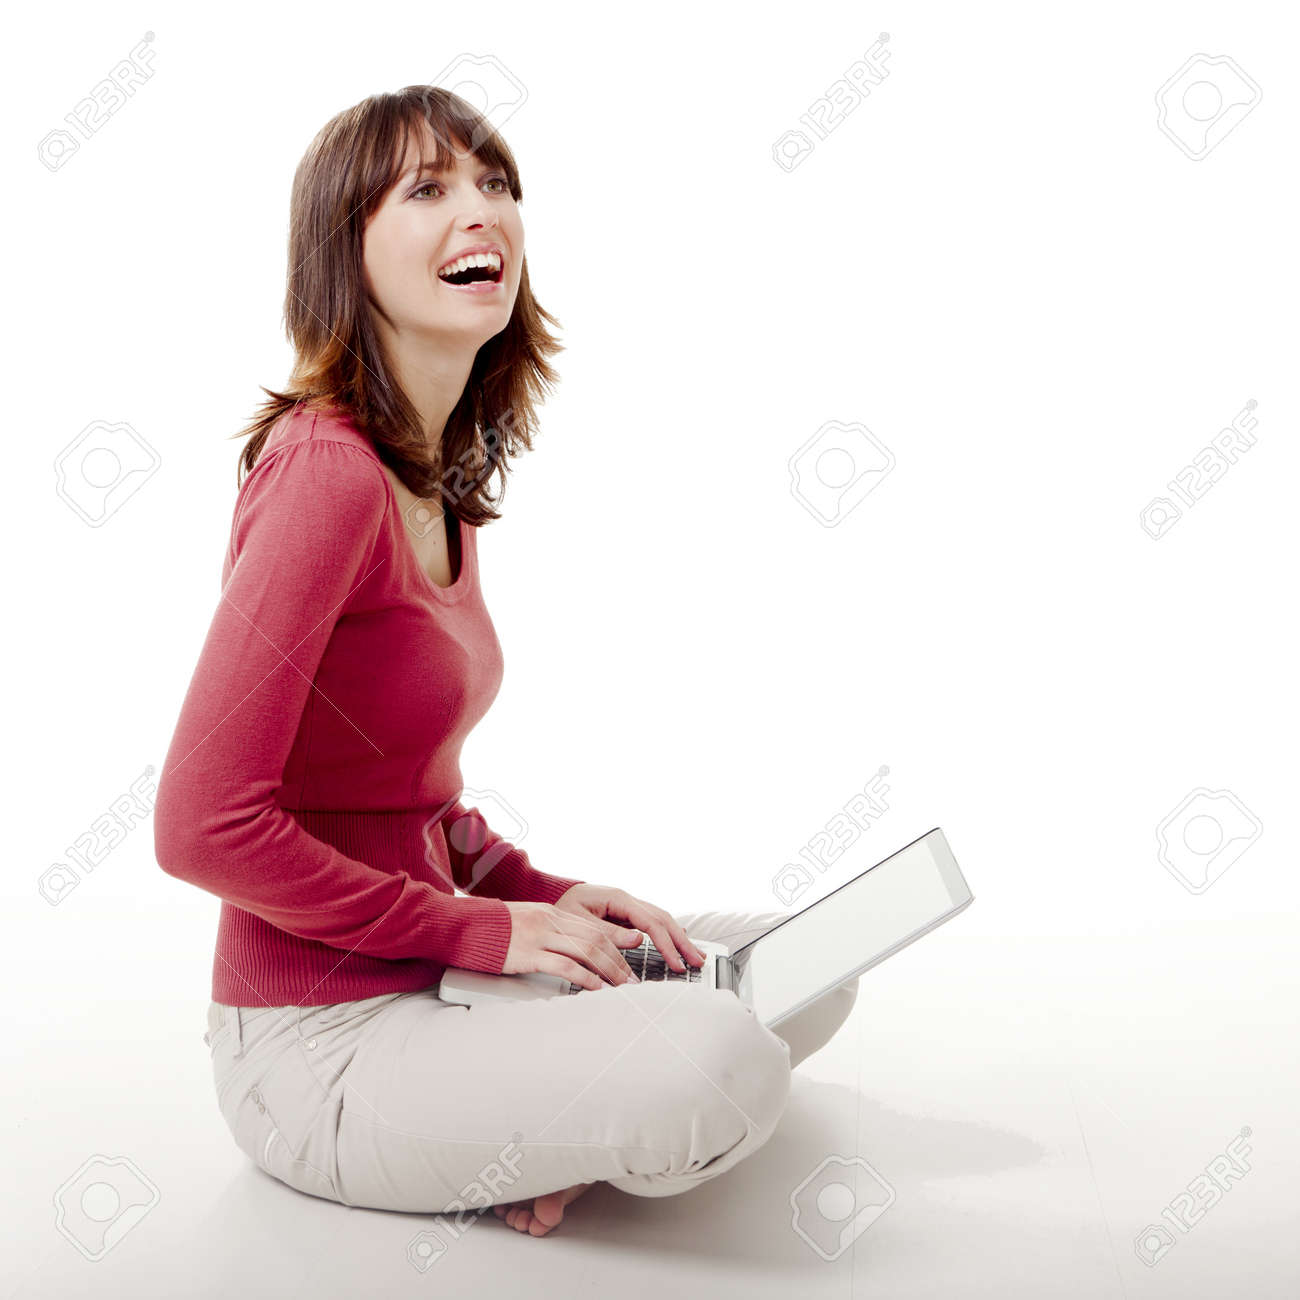 Beautiful woman sitting on the floor laughing  and working with a laptop Stock Photo - 12165271